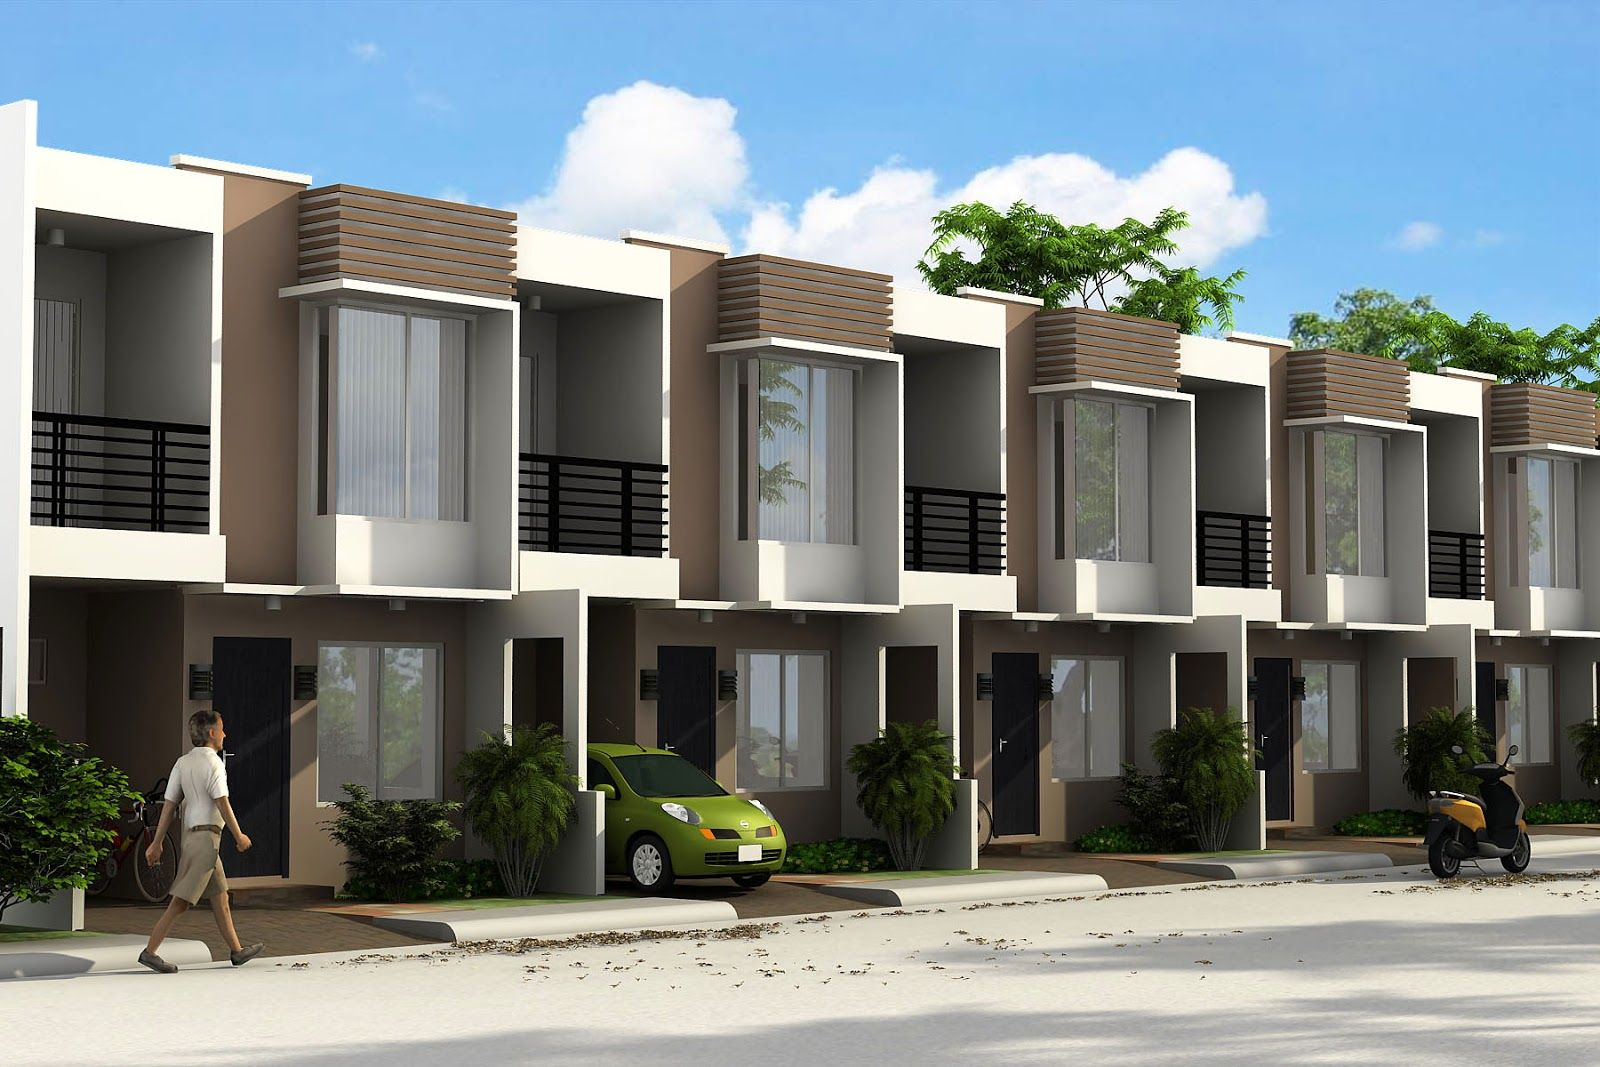 Philippines townhouse design google search house and for Townhouse architecture designs